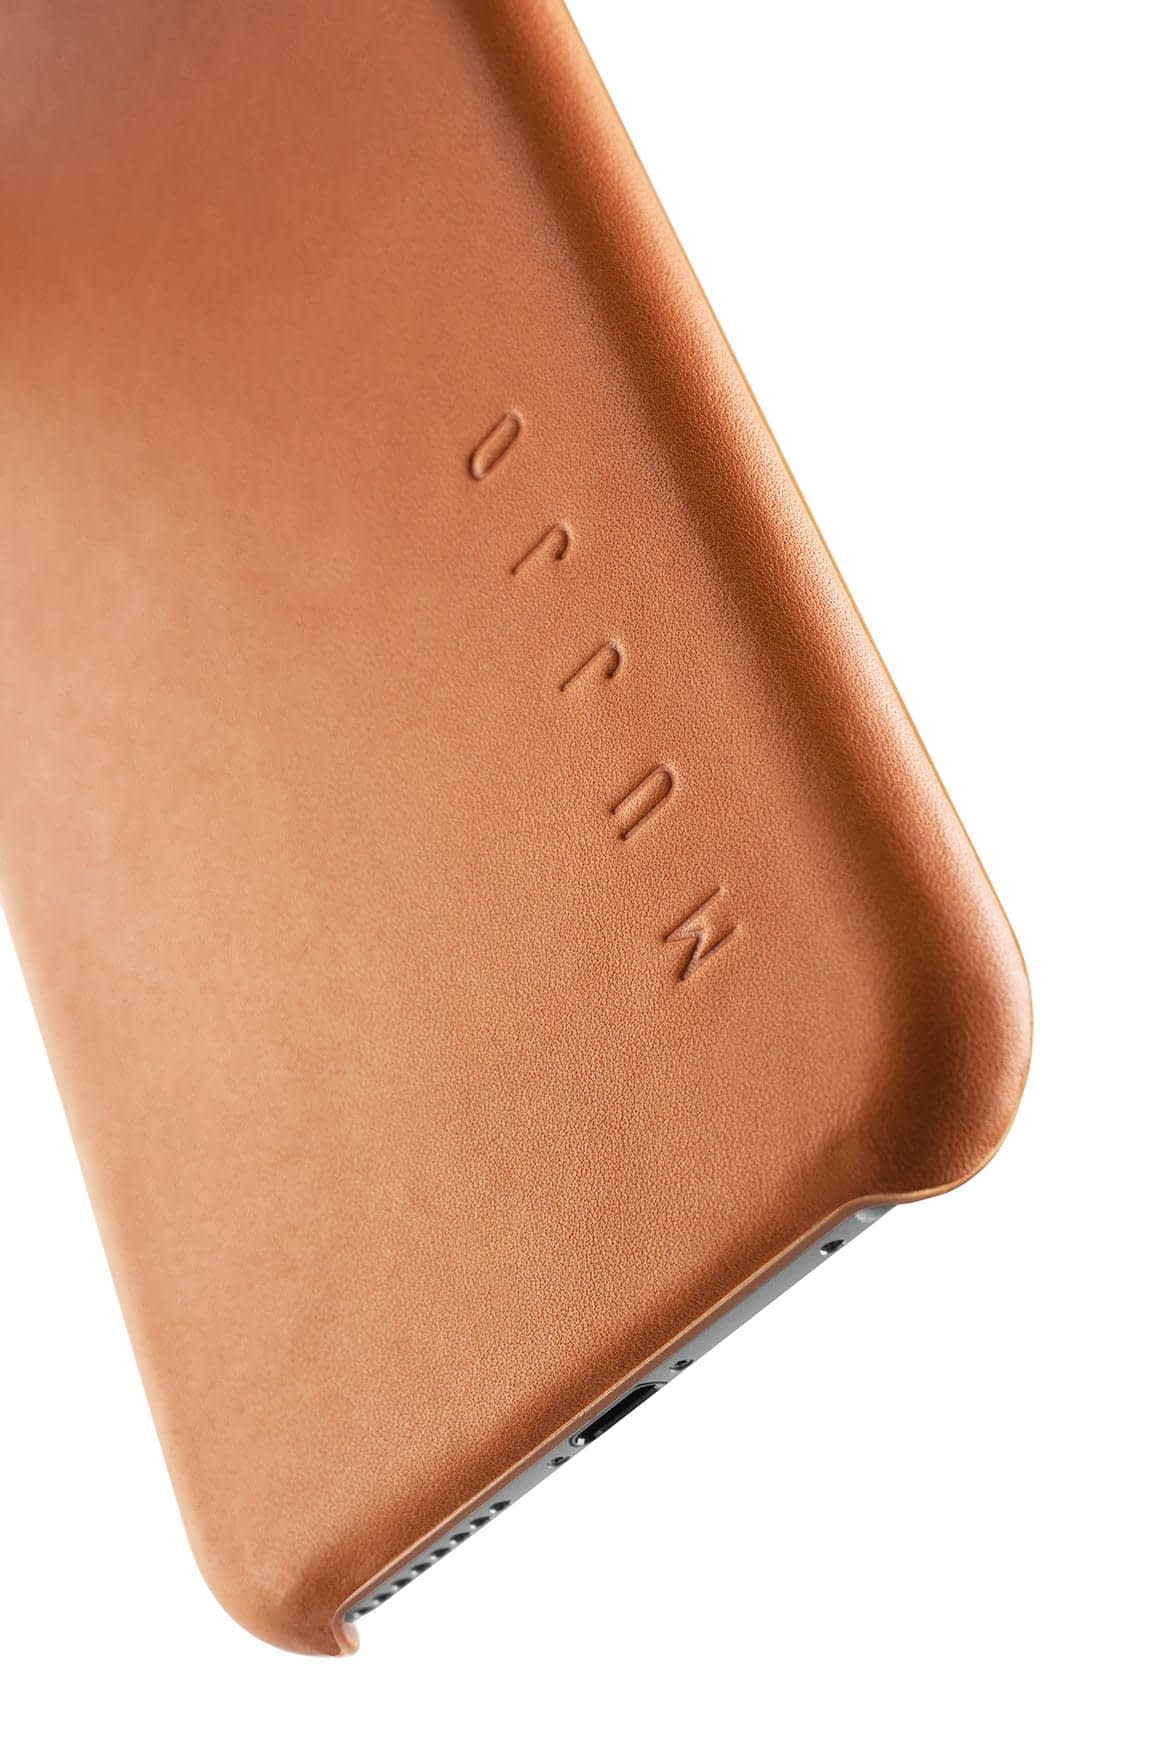 Leather Case for iPhone 6s Plus Tan 008